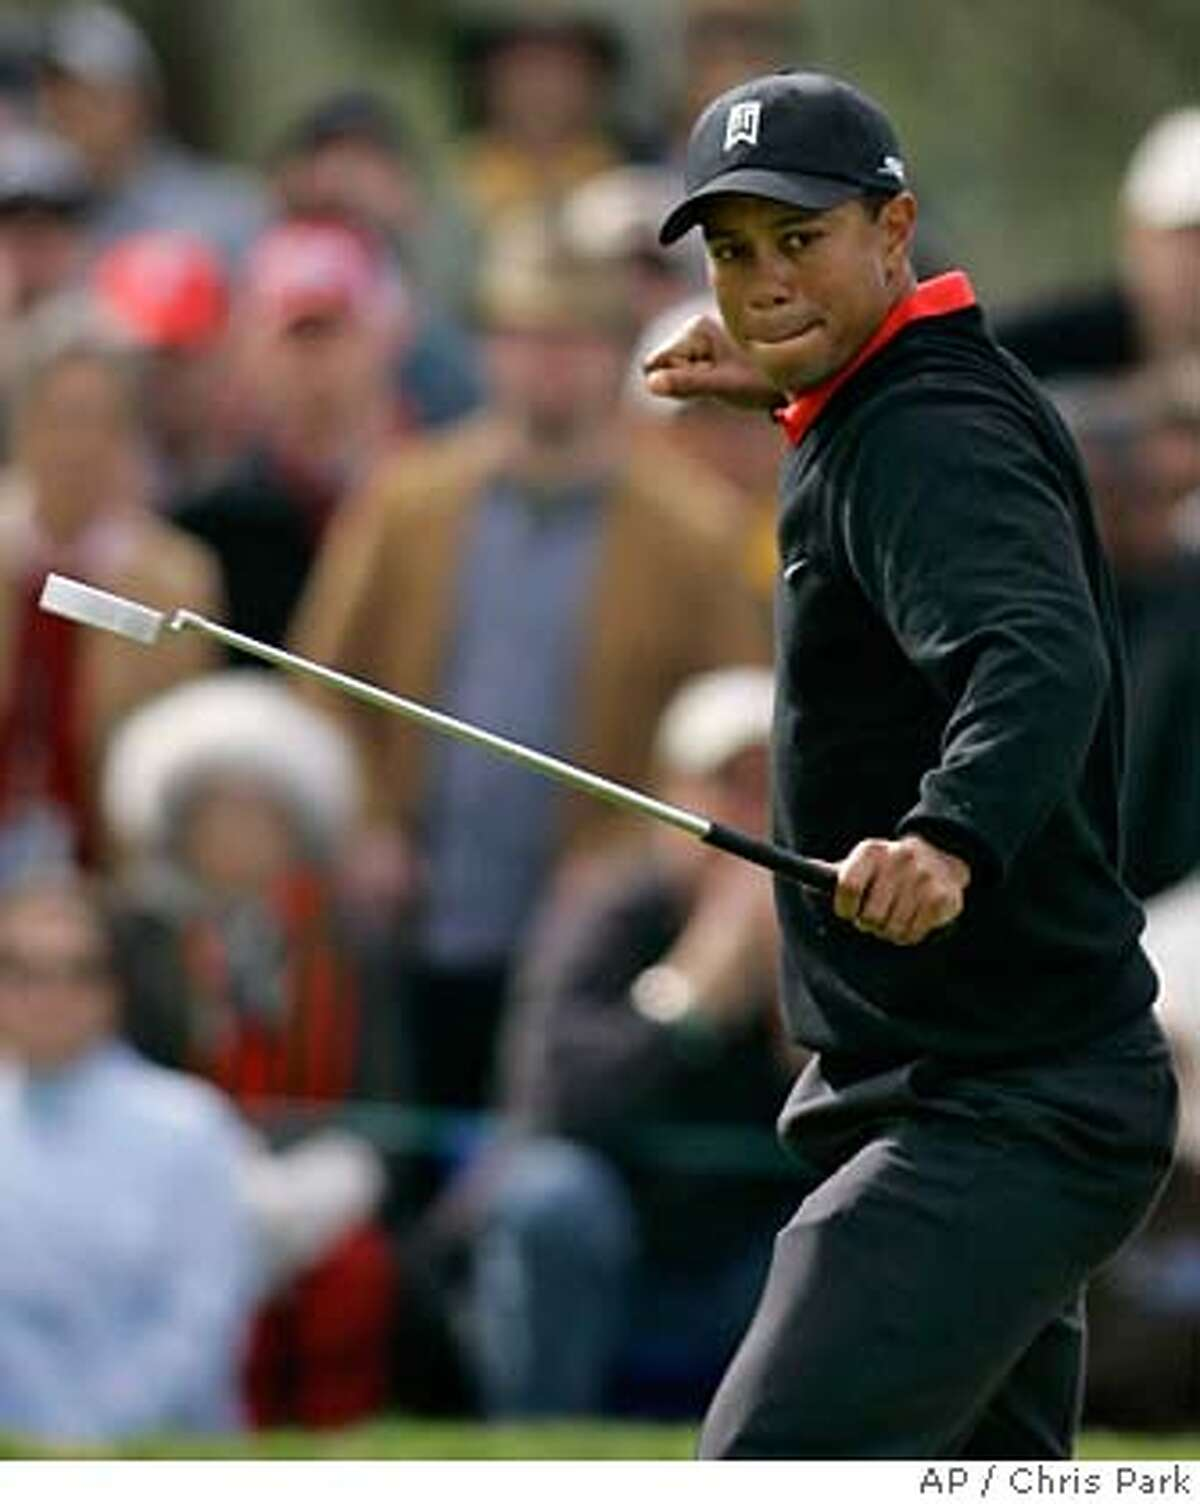 Tiger Woods reacts as he makes an eagle putt on the ninth hole which temporarily tied him for lead during the final round of the Buick Invitational golf tournament in San Diego, Sunday, January 28, 2007. (AP Photo/Chris Park)